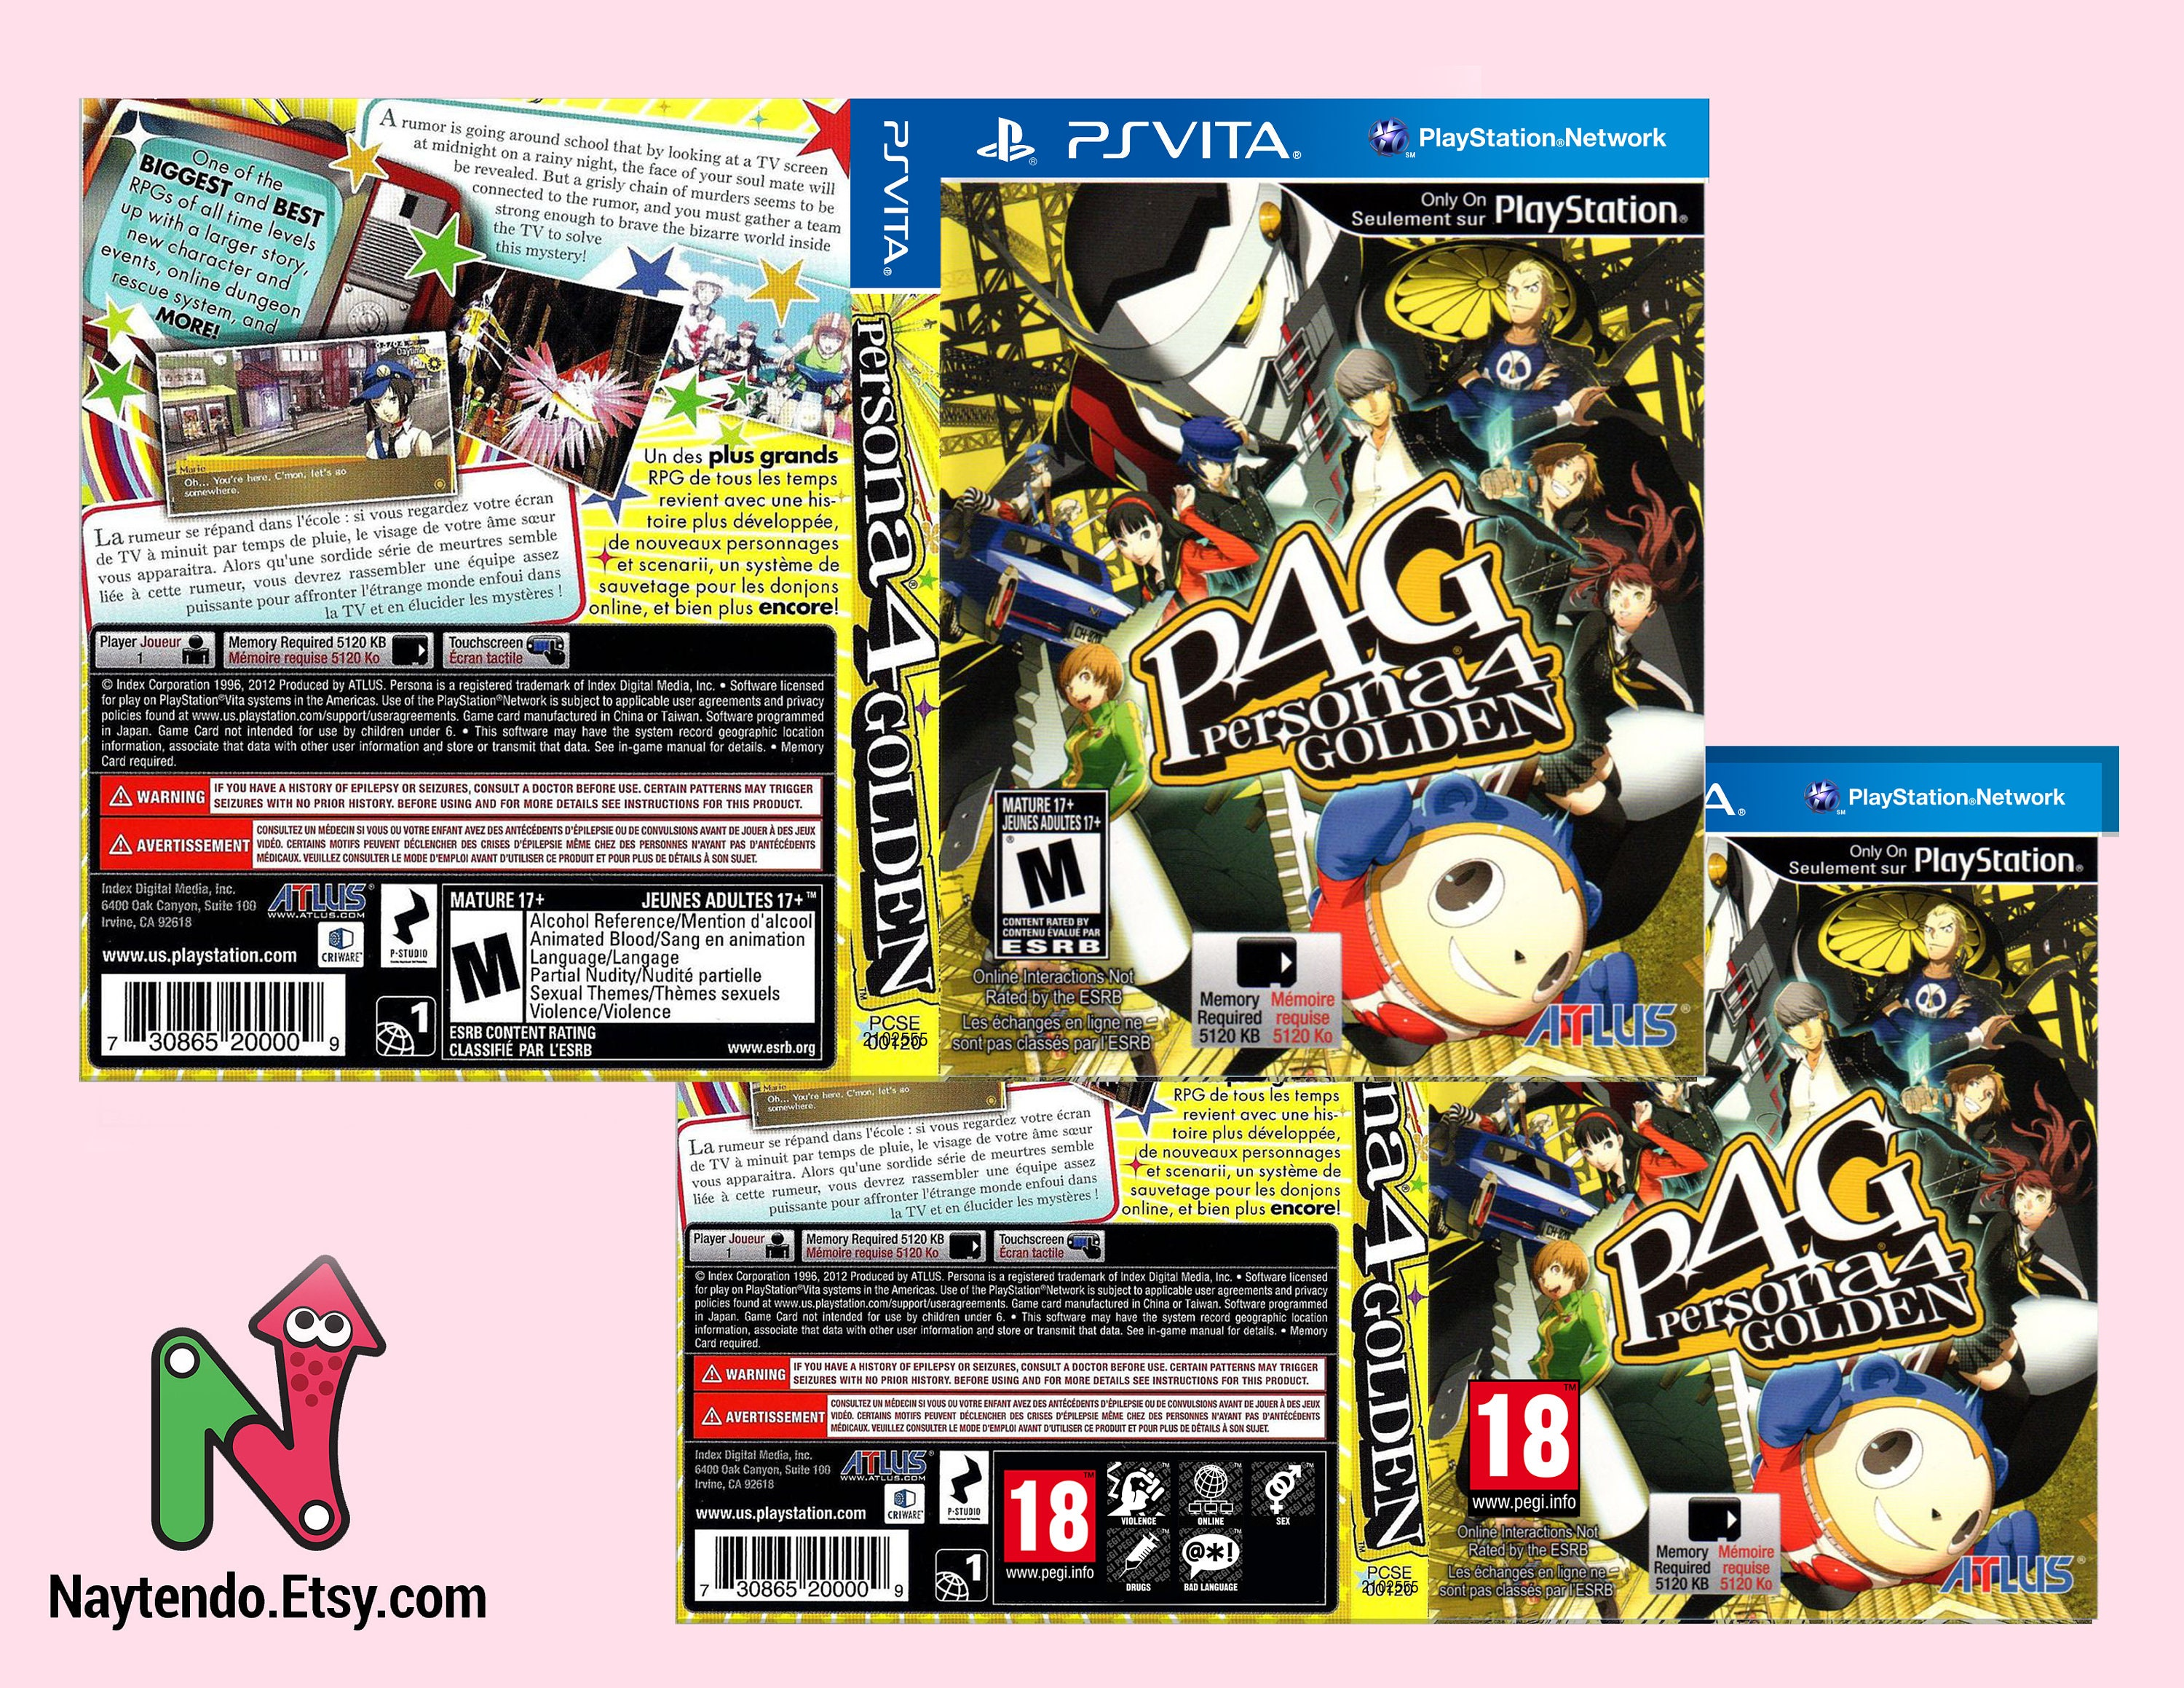 Persona 4 Golden - Custom PS Vita Art Cover w/ Game Case